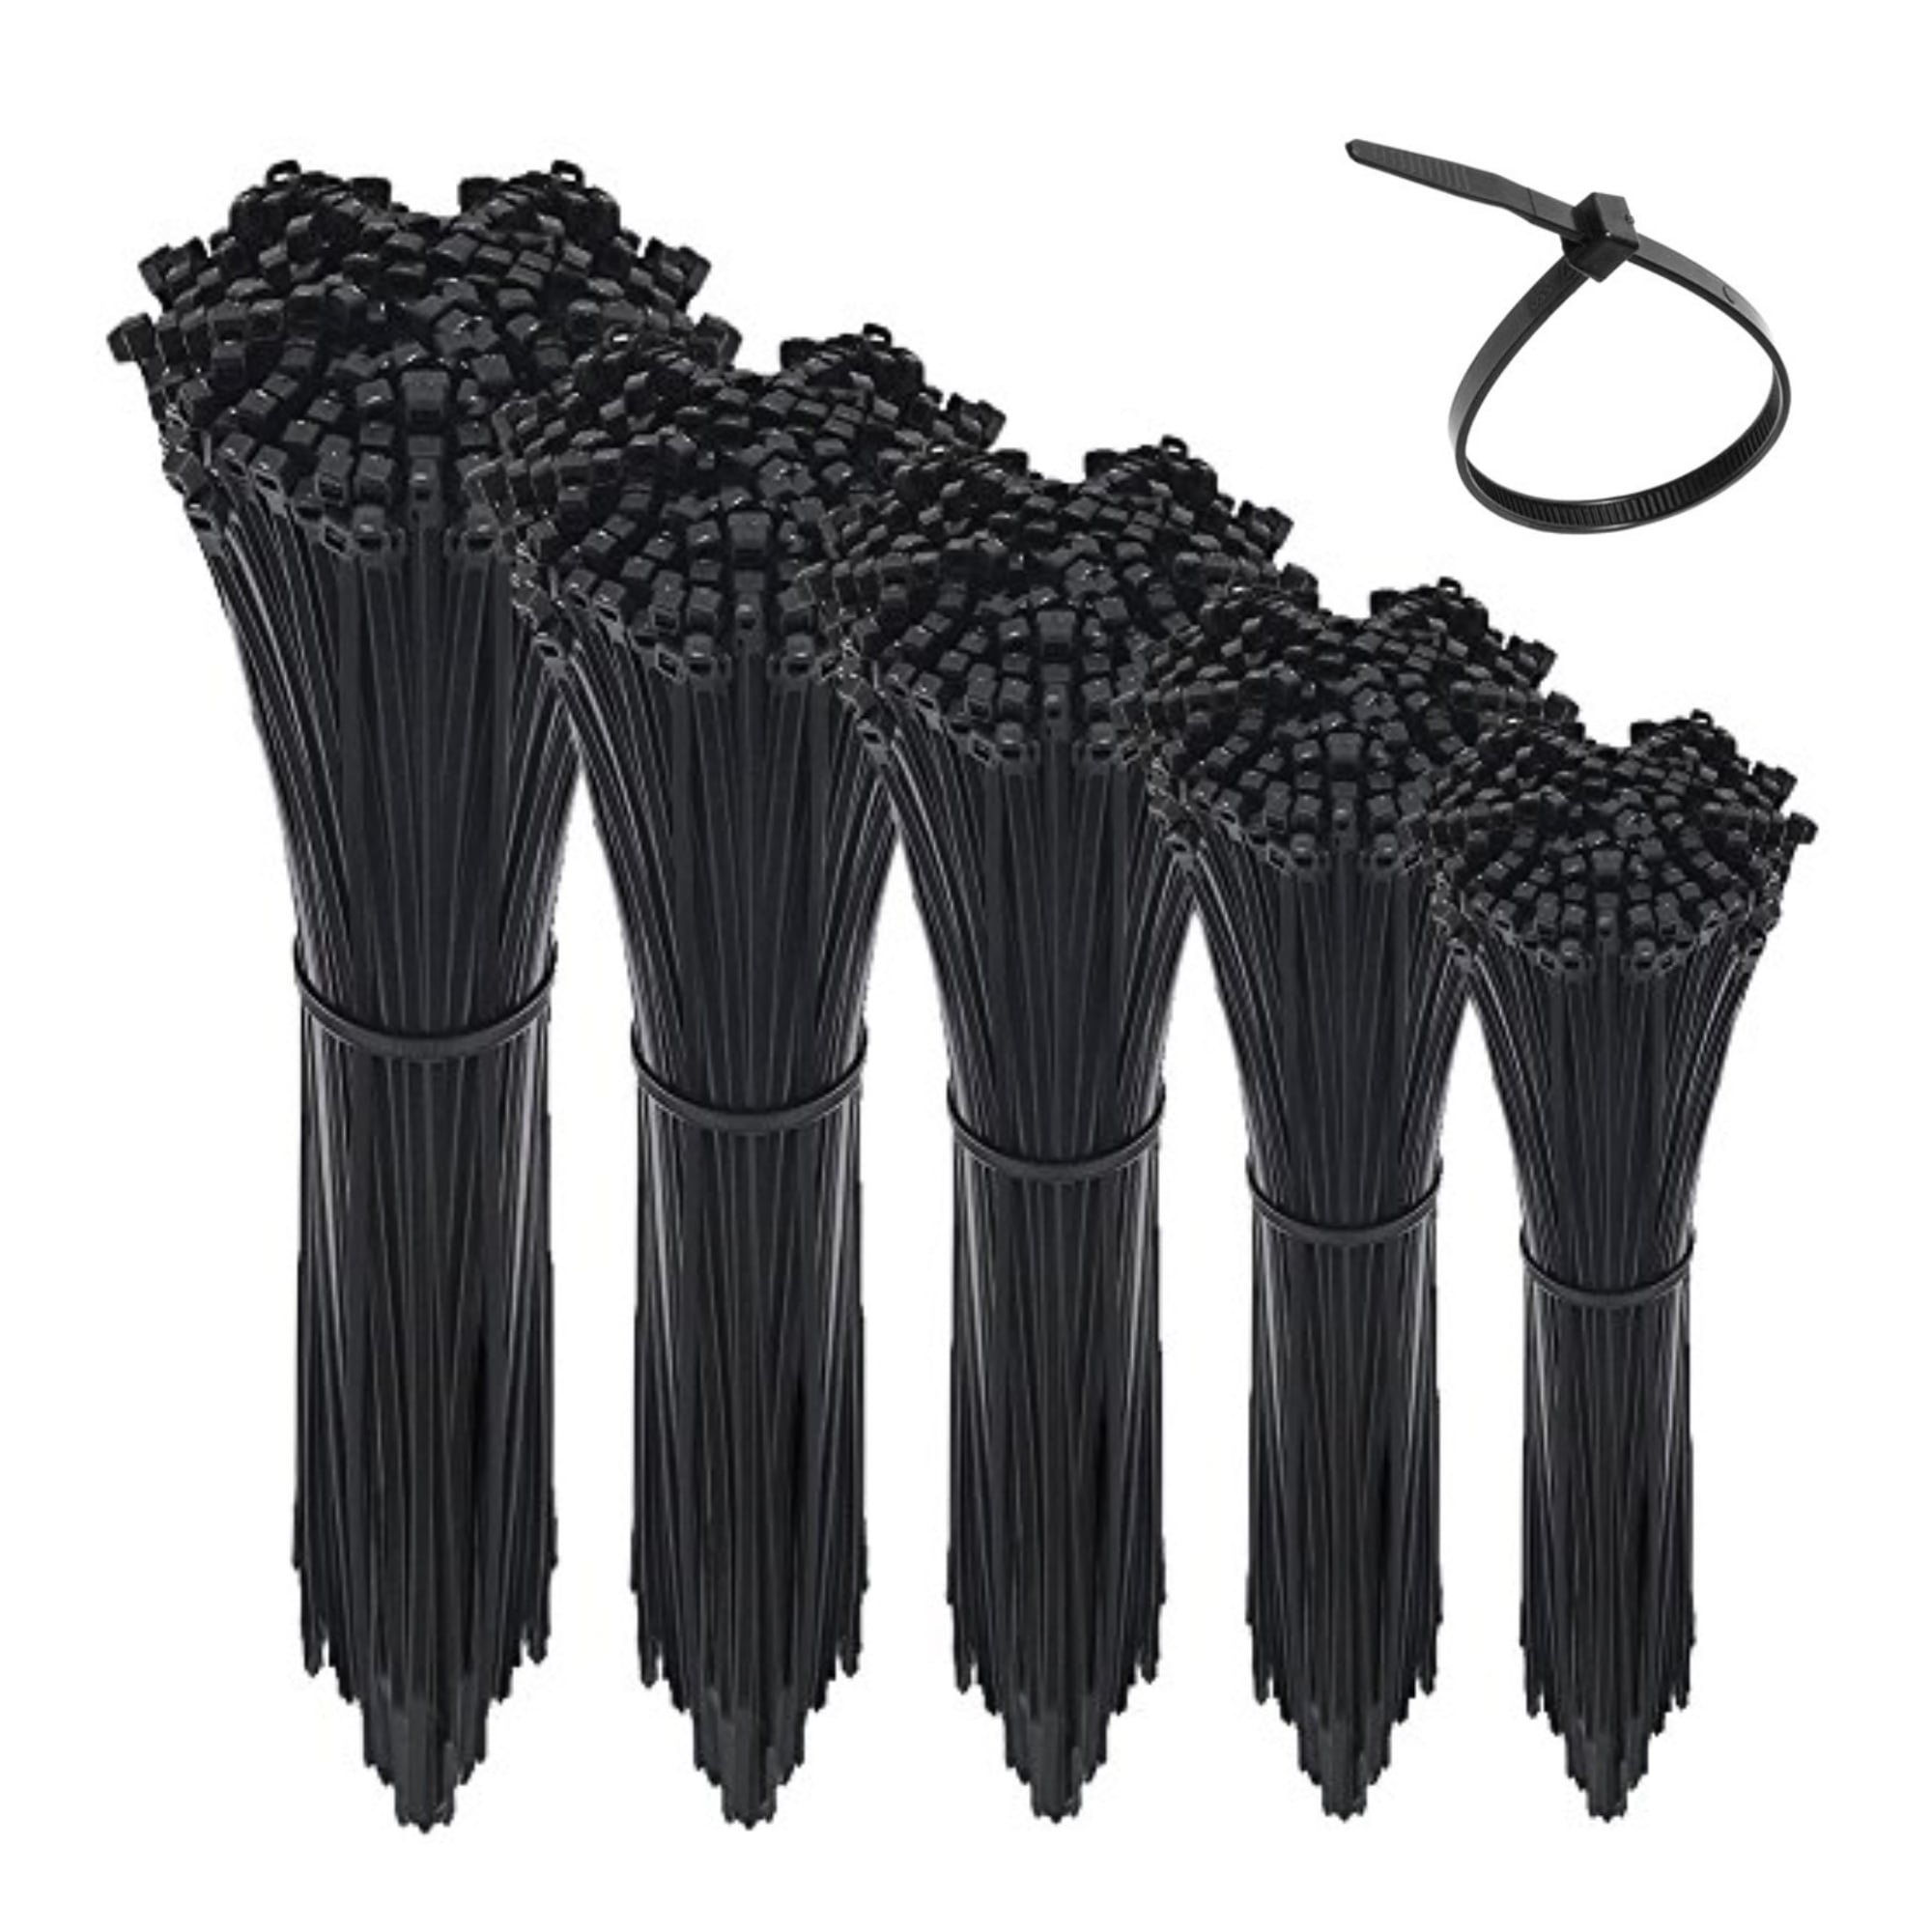 1000pcs Cable Zip Ties 2.5mm x 100mm Black Nylon UV Stabilised